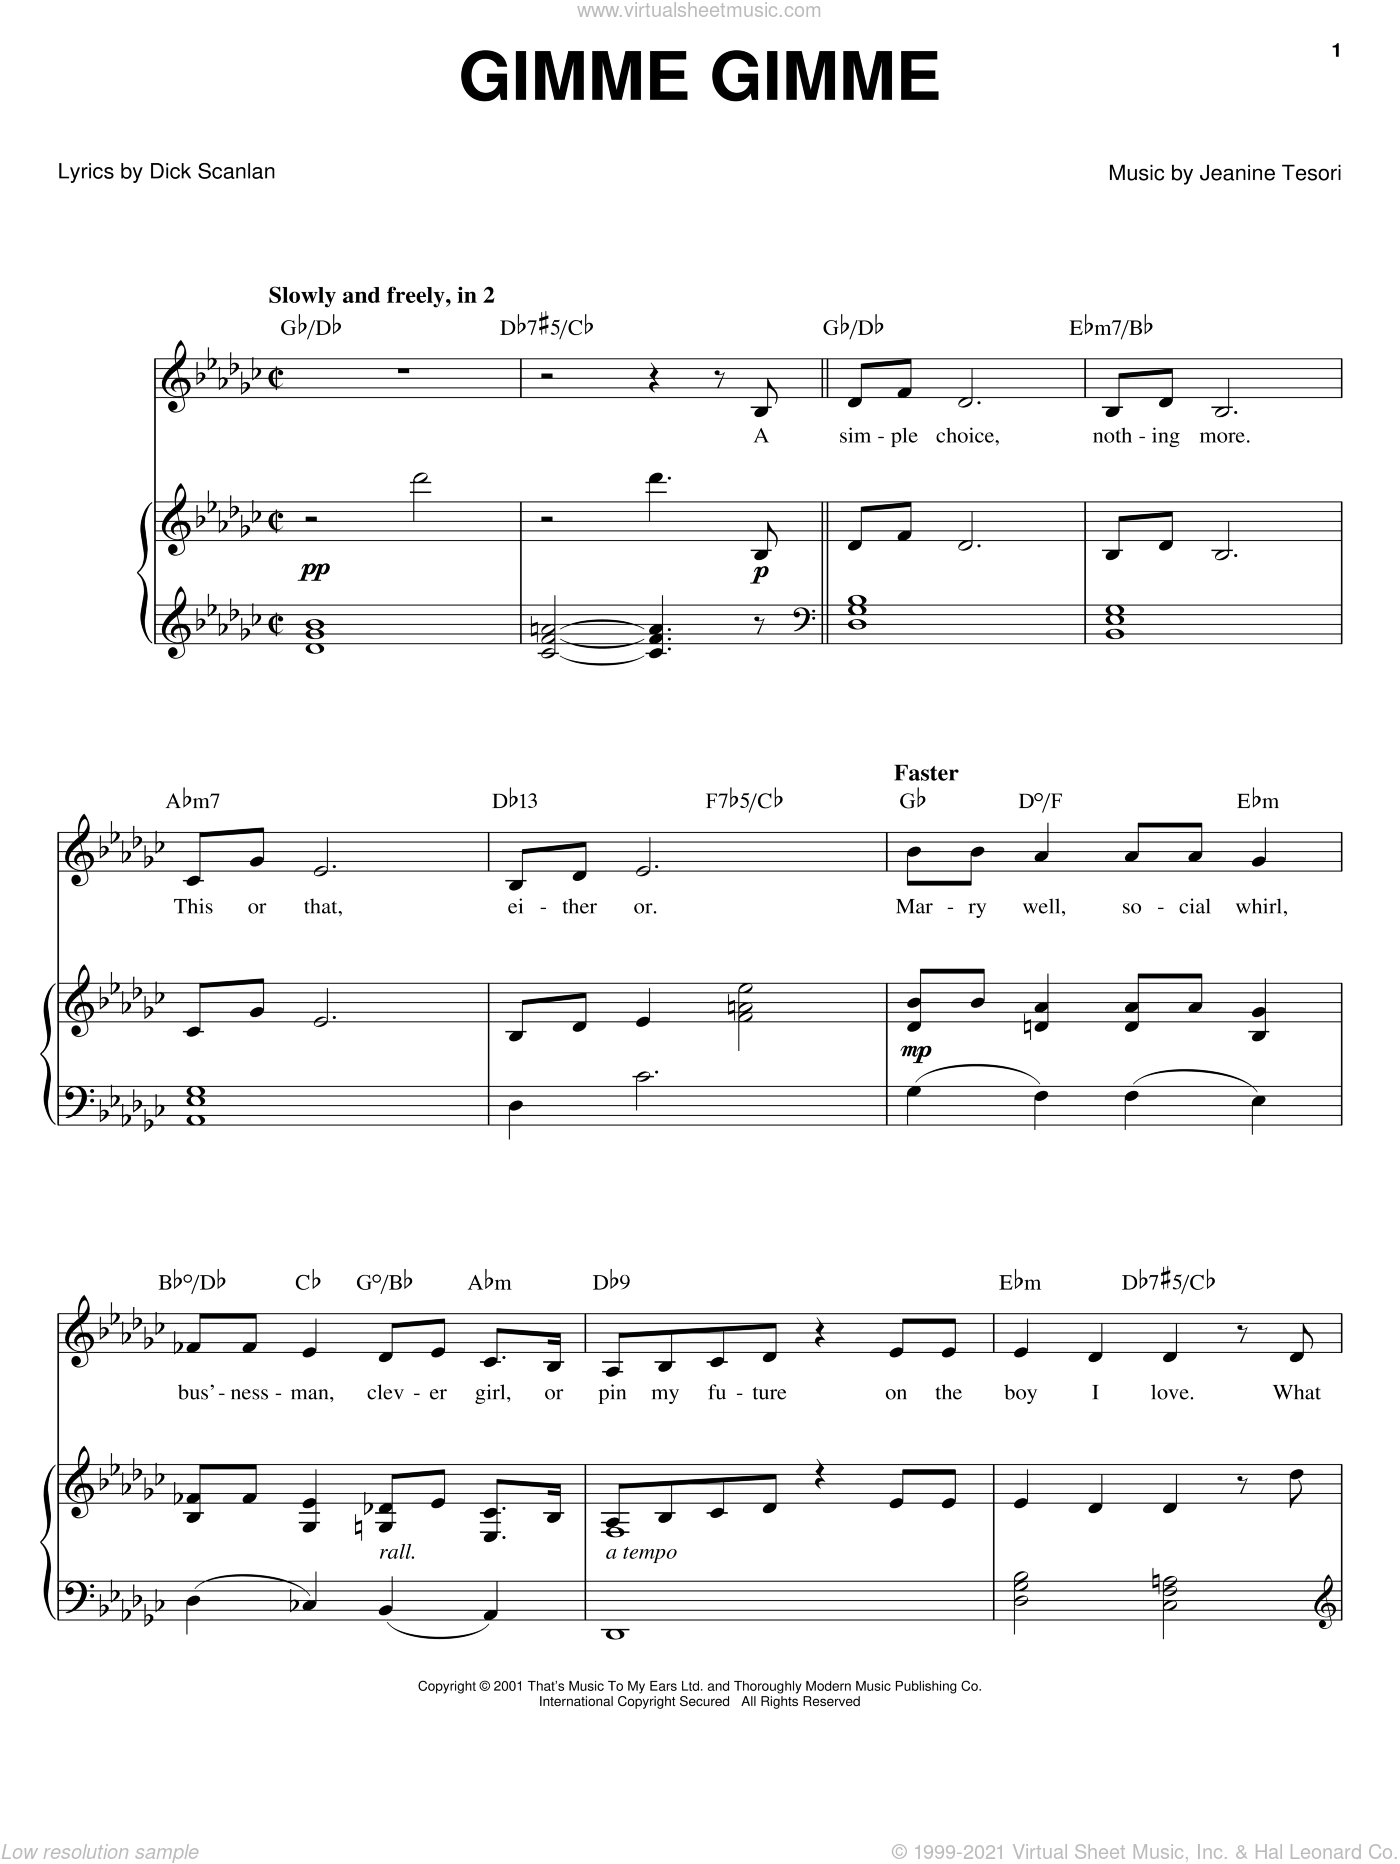 Gimme Gimme sheet music for voice, piano or guitar by Jeanine Tesori